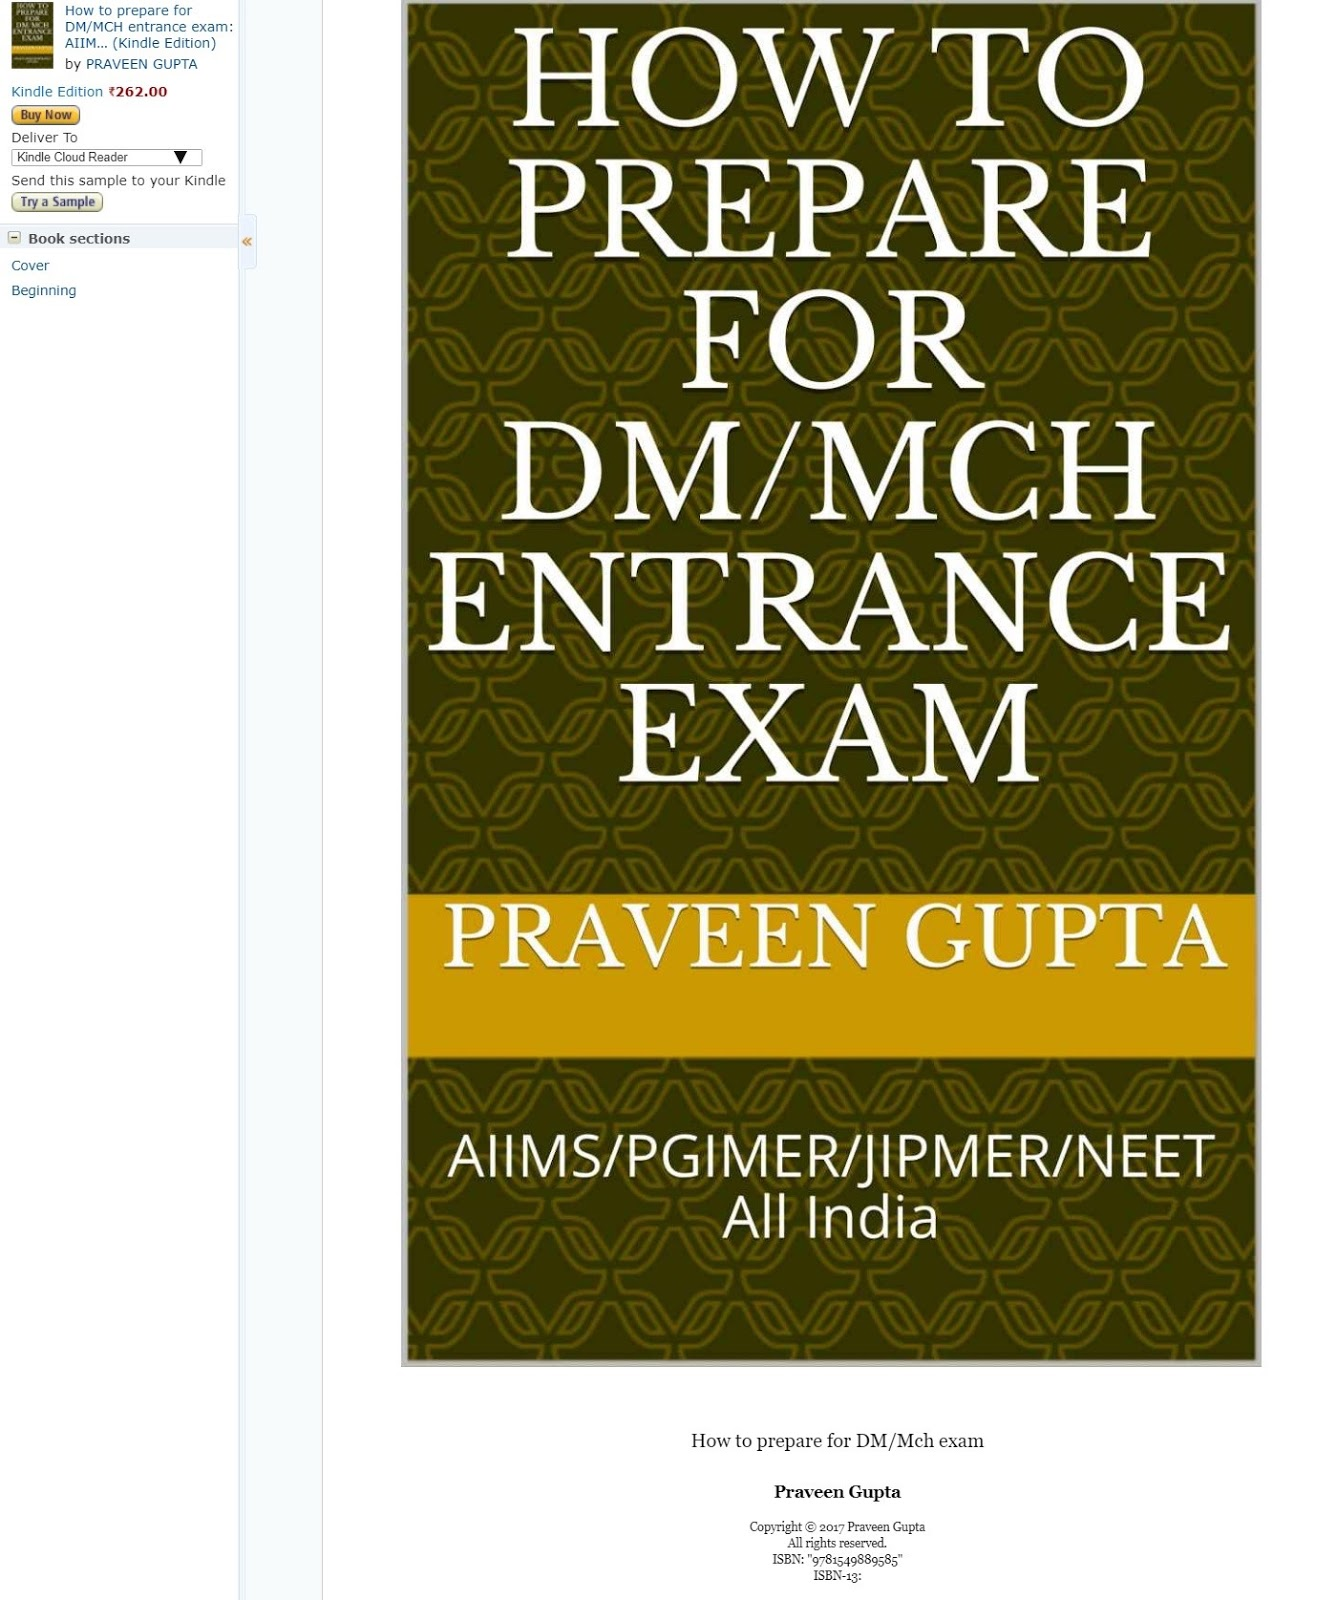 Cardiology window: How to prepare for DM/MCH entrance exam